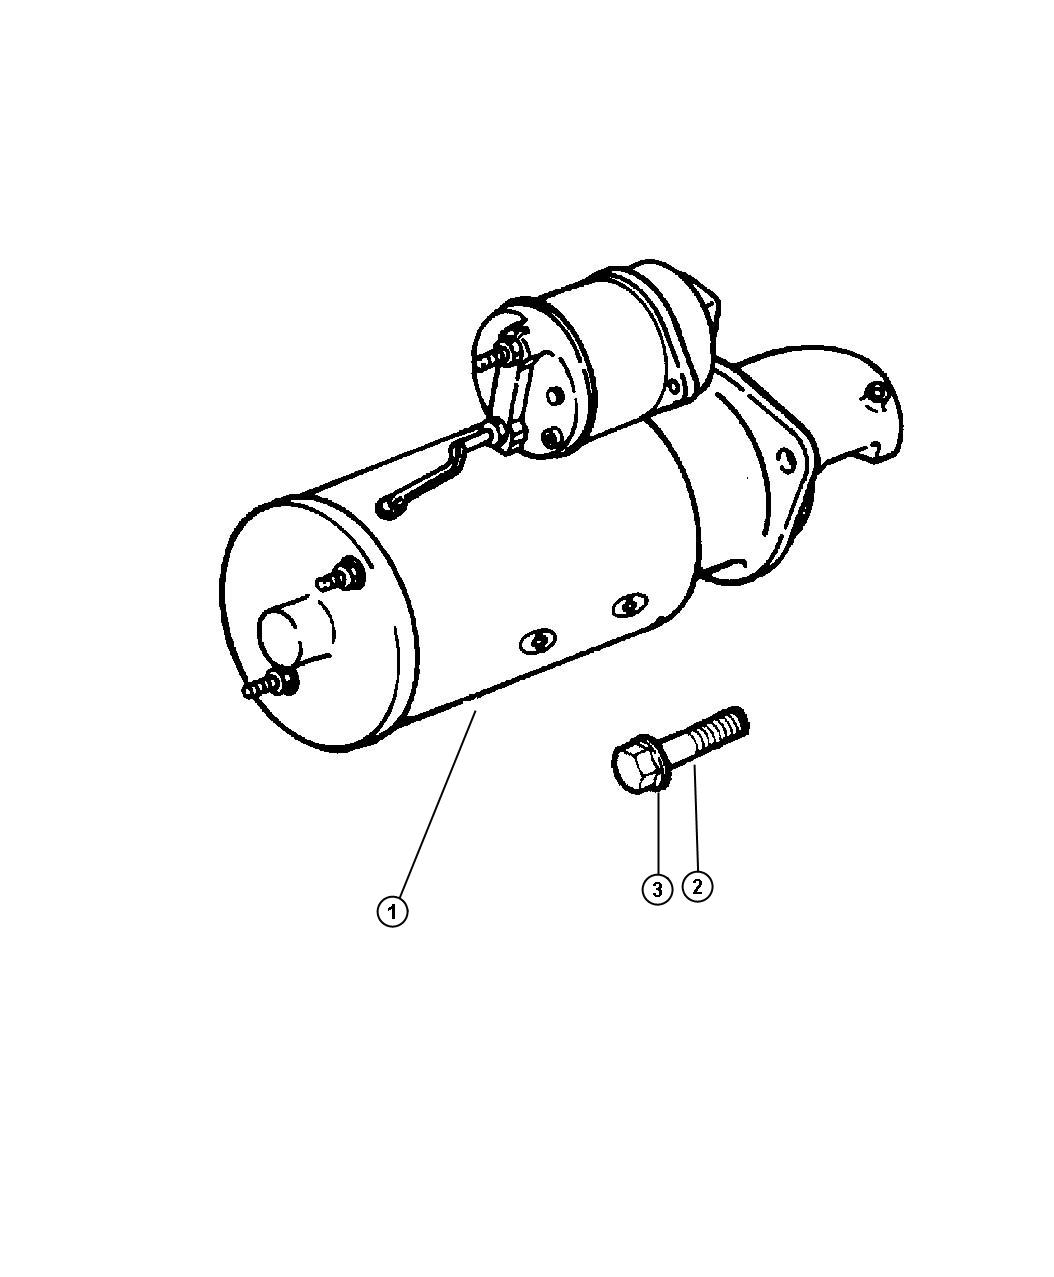 Starter Motor Dodge Ram 1500-2500-3500 1997-2001 Genuine